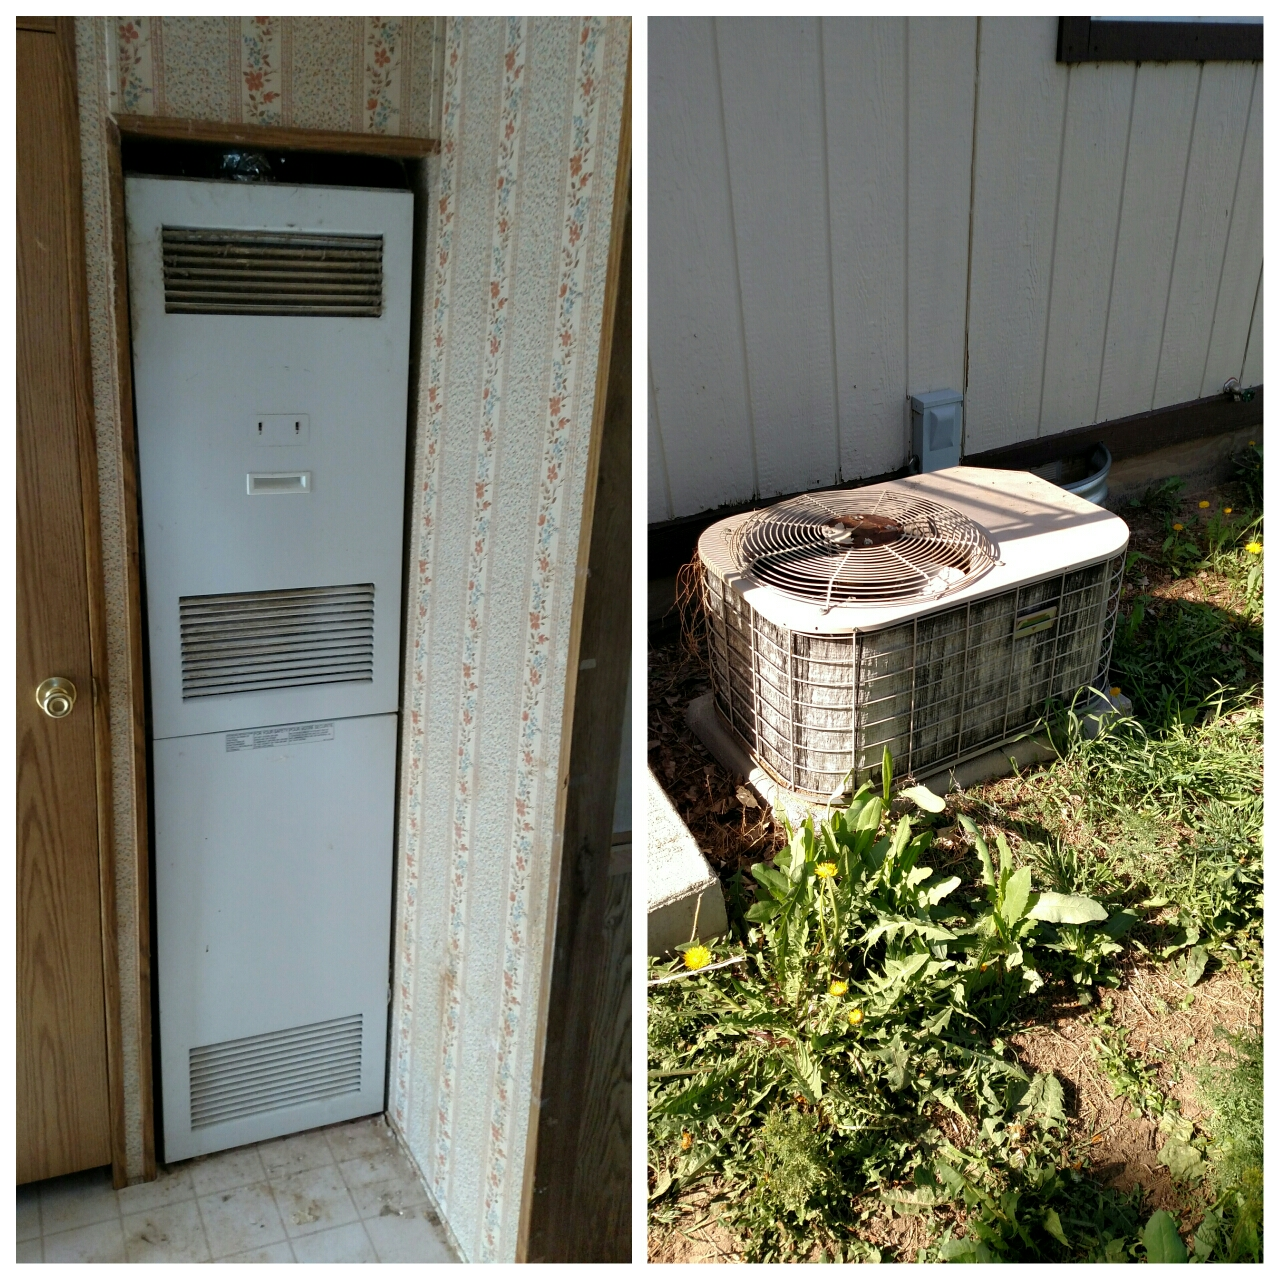 Pierce, CO - Tearing out old Coleman furnace and AC to replace with new Trane equipment.